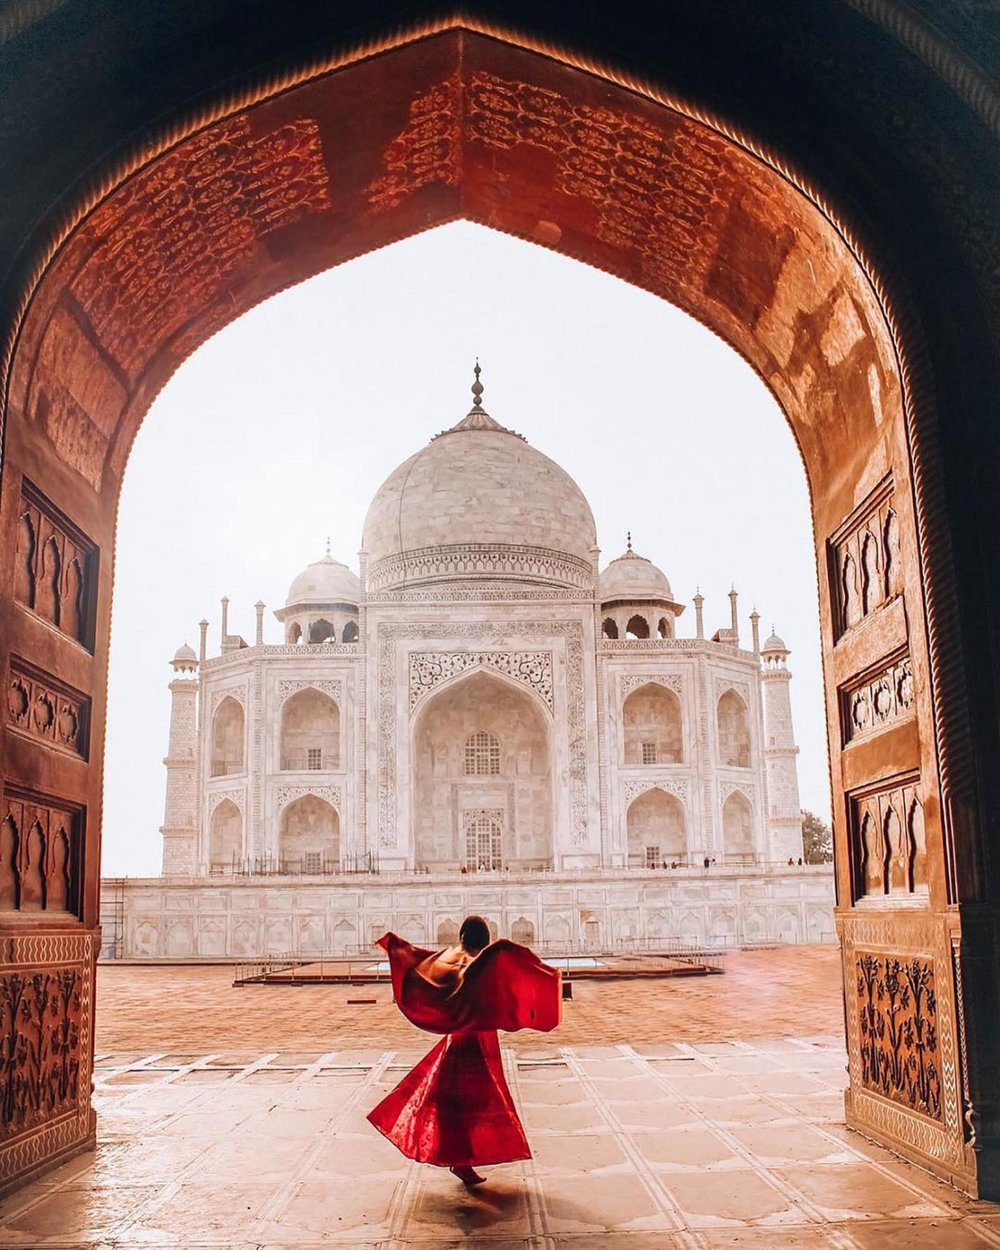 January 27 - February 6, 2020 - 10 Nights / 11 DaysGroup Size: 16*12 Spots Open**VISA REQUIRED*Immerse yourself in culture and join us as we explore the pink city and the city of lakes in Rajasthan, watch the sunrise in Agra overlooking the Taj Mahal, and get ready for the most experiential trip of your life!Here's a little of what you can expect:*Luxury Hotel Accommodations**Curated Dining Options Paired with Local Delicacies**Stroll through Golden Palaces + Historic Forts**Take an Authentic Cooking Class**And a Squad of Girls to Keep You Company!*